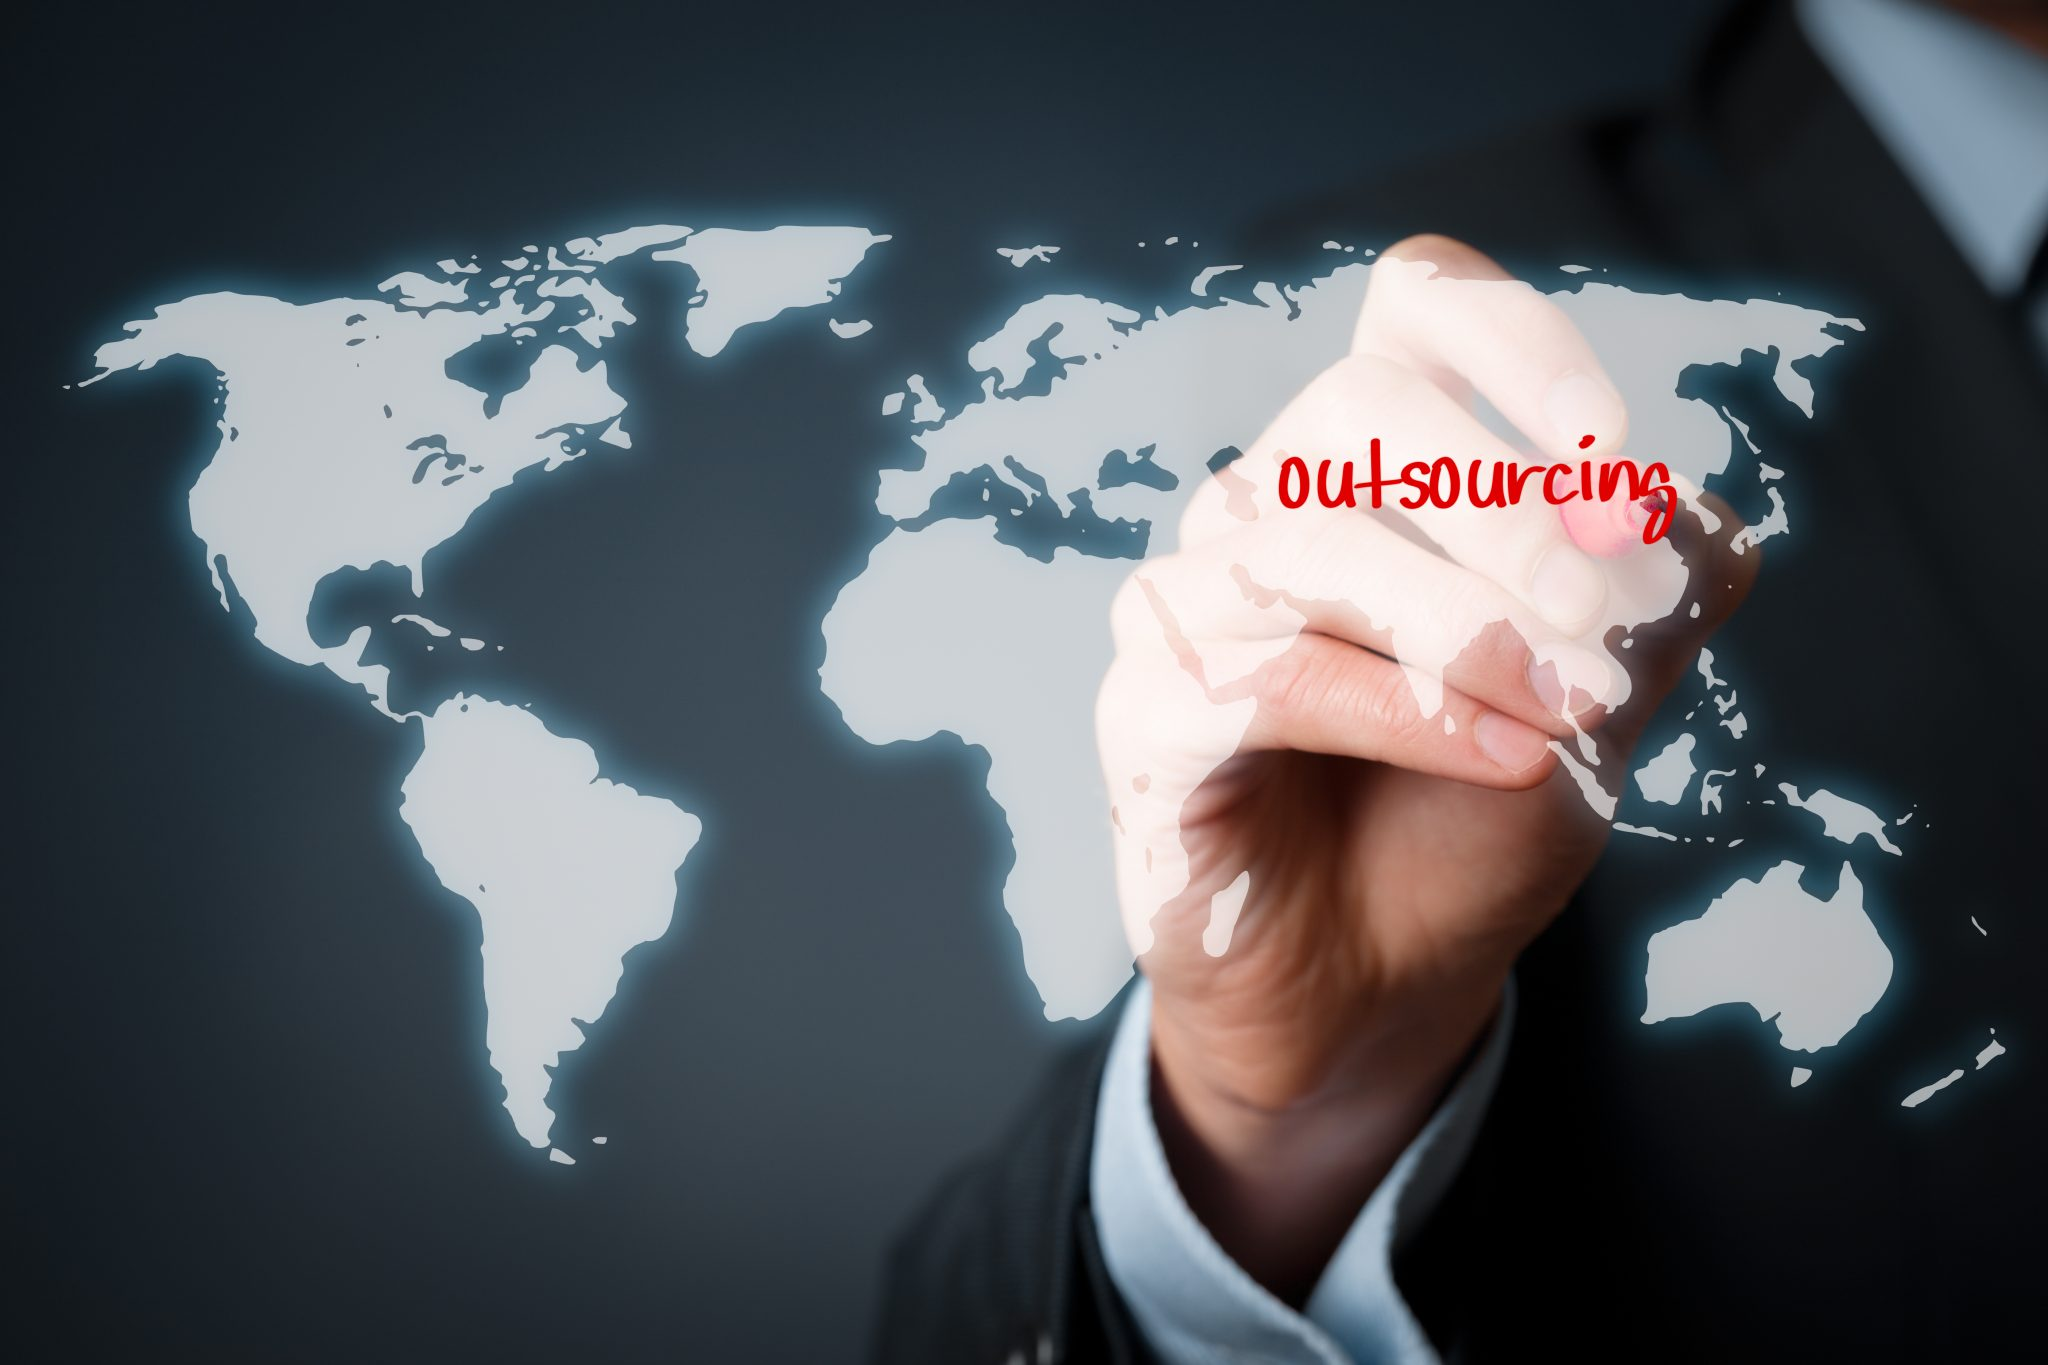 Outsourcing to India Map